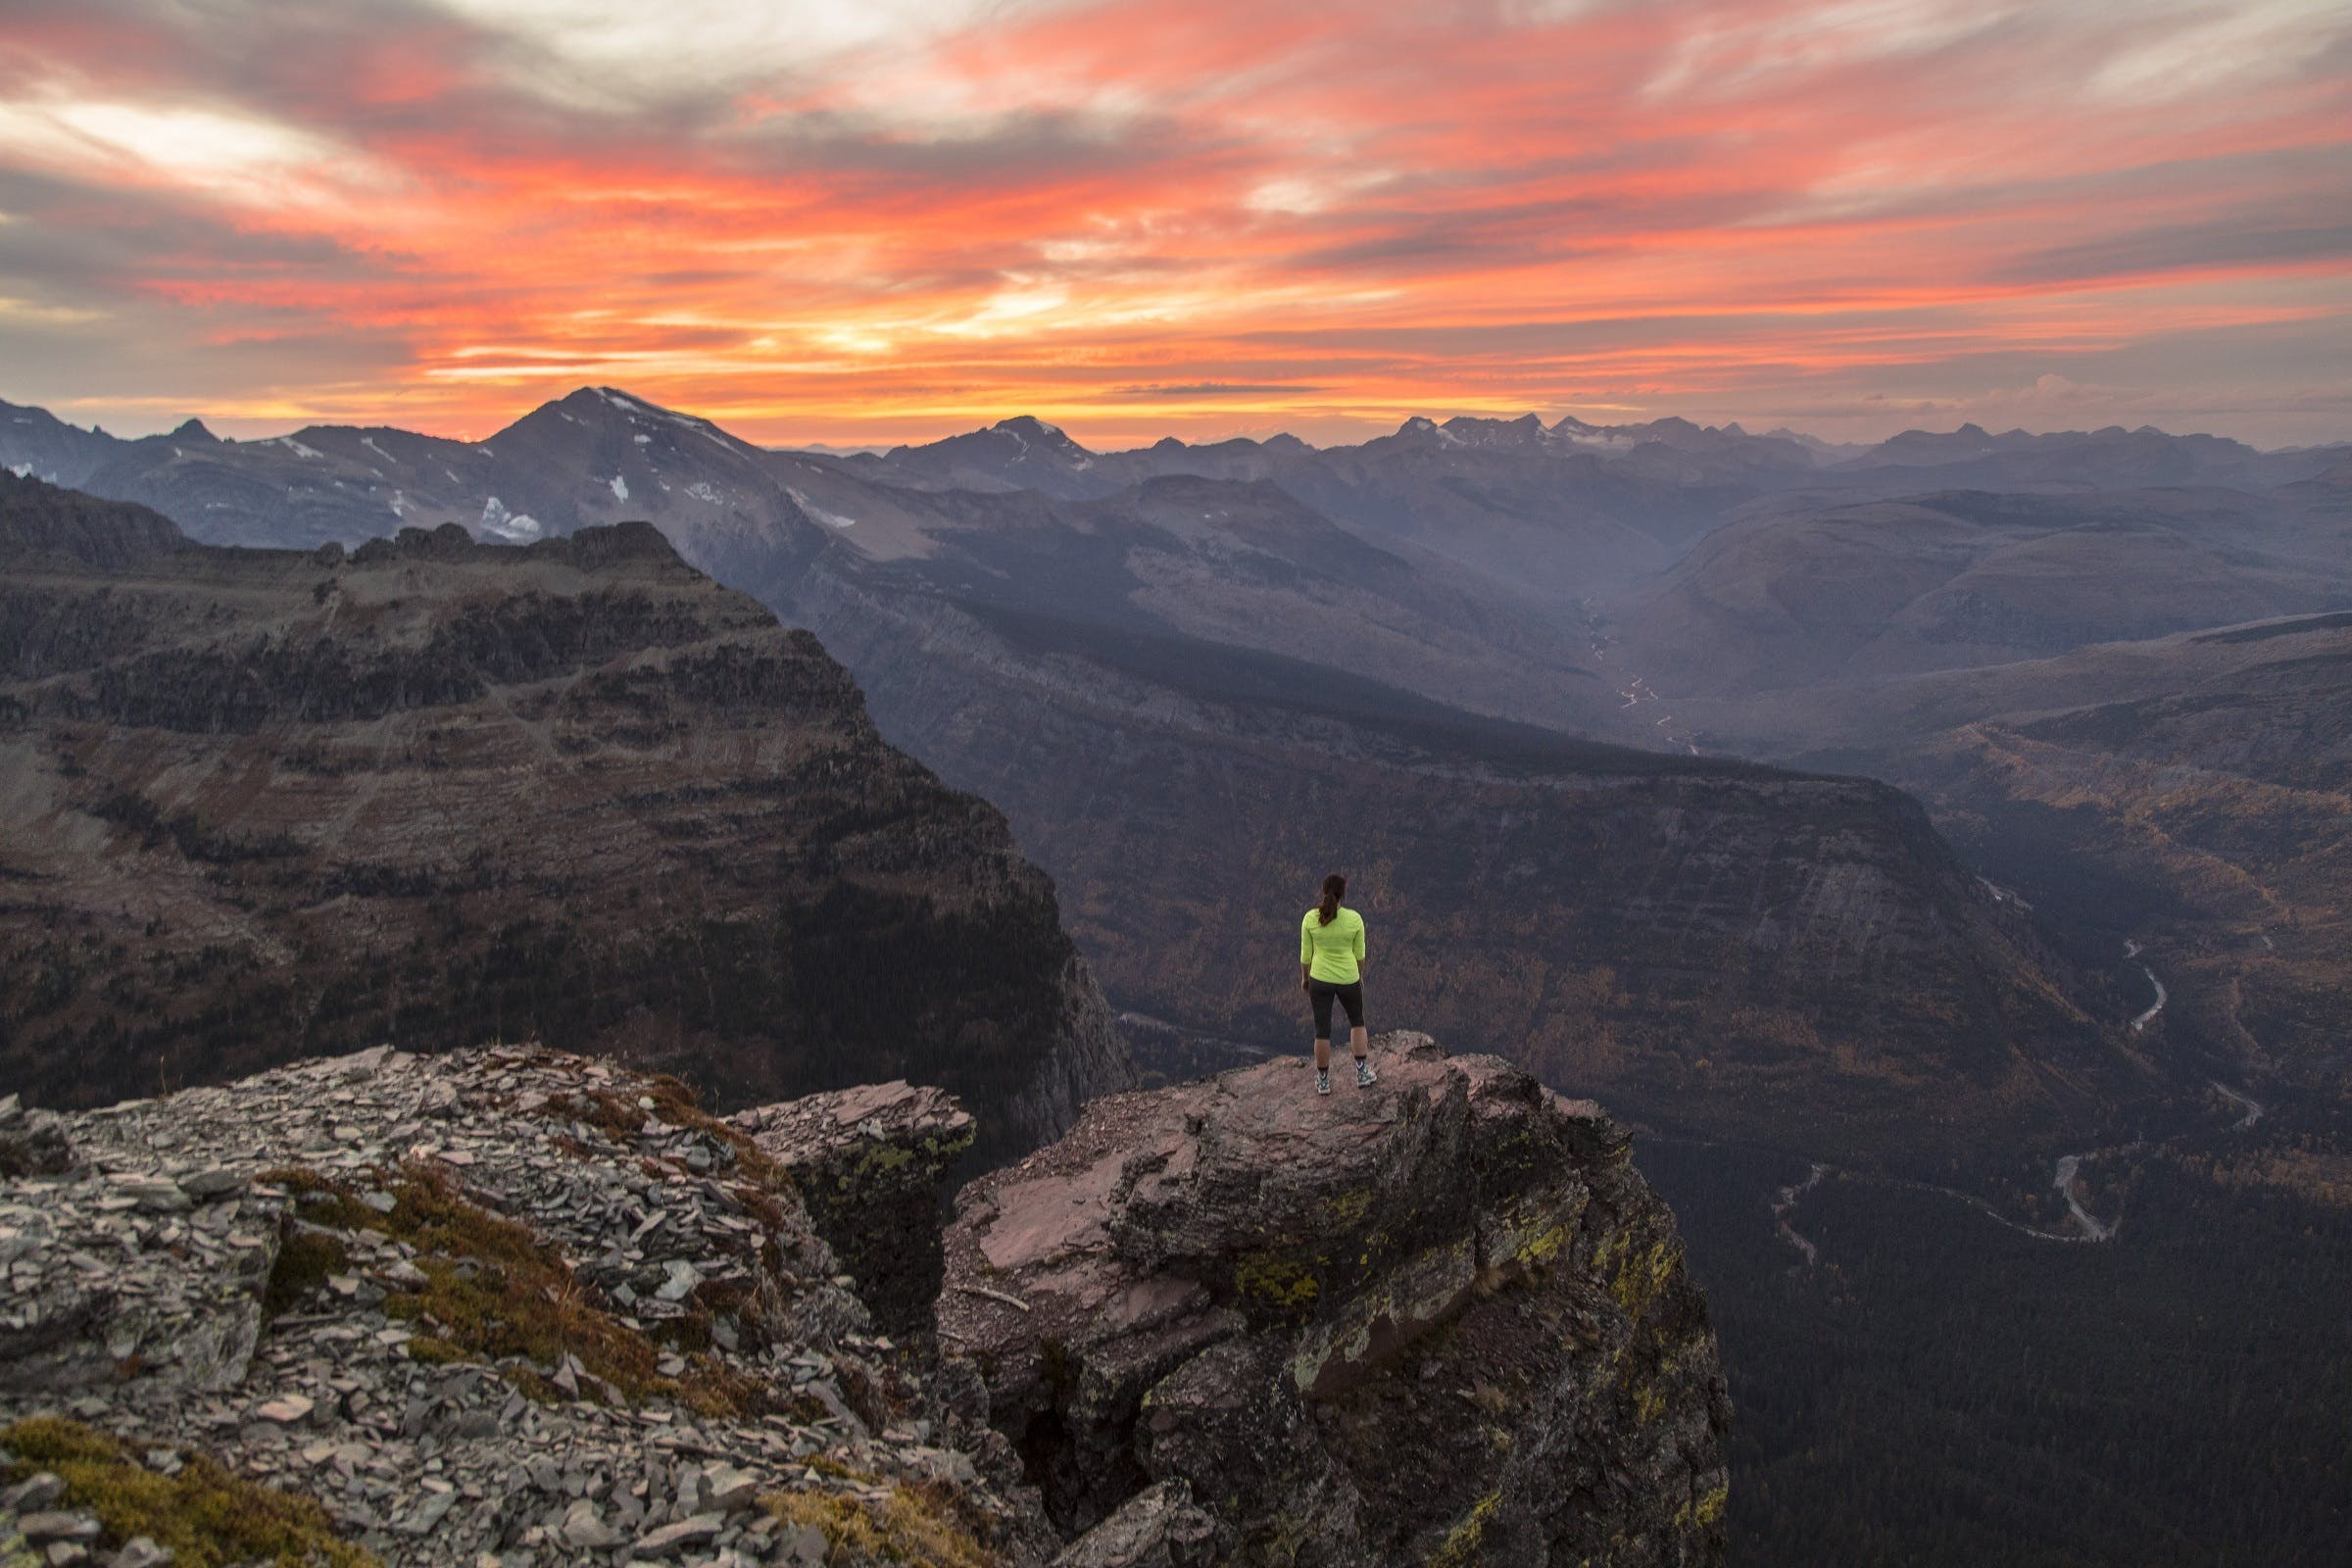 Woman Standing on Edge of Mountain